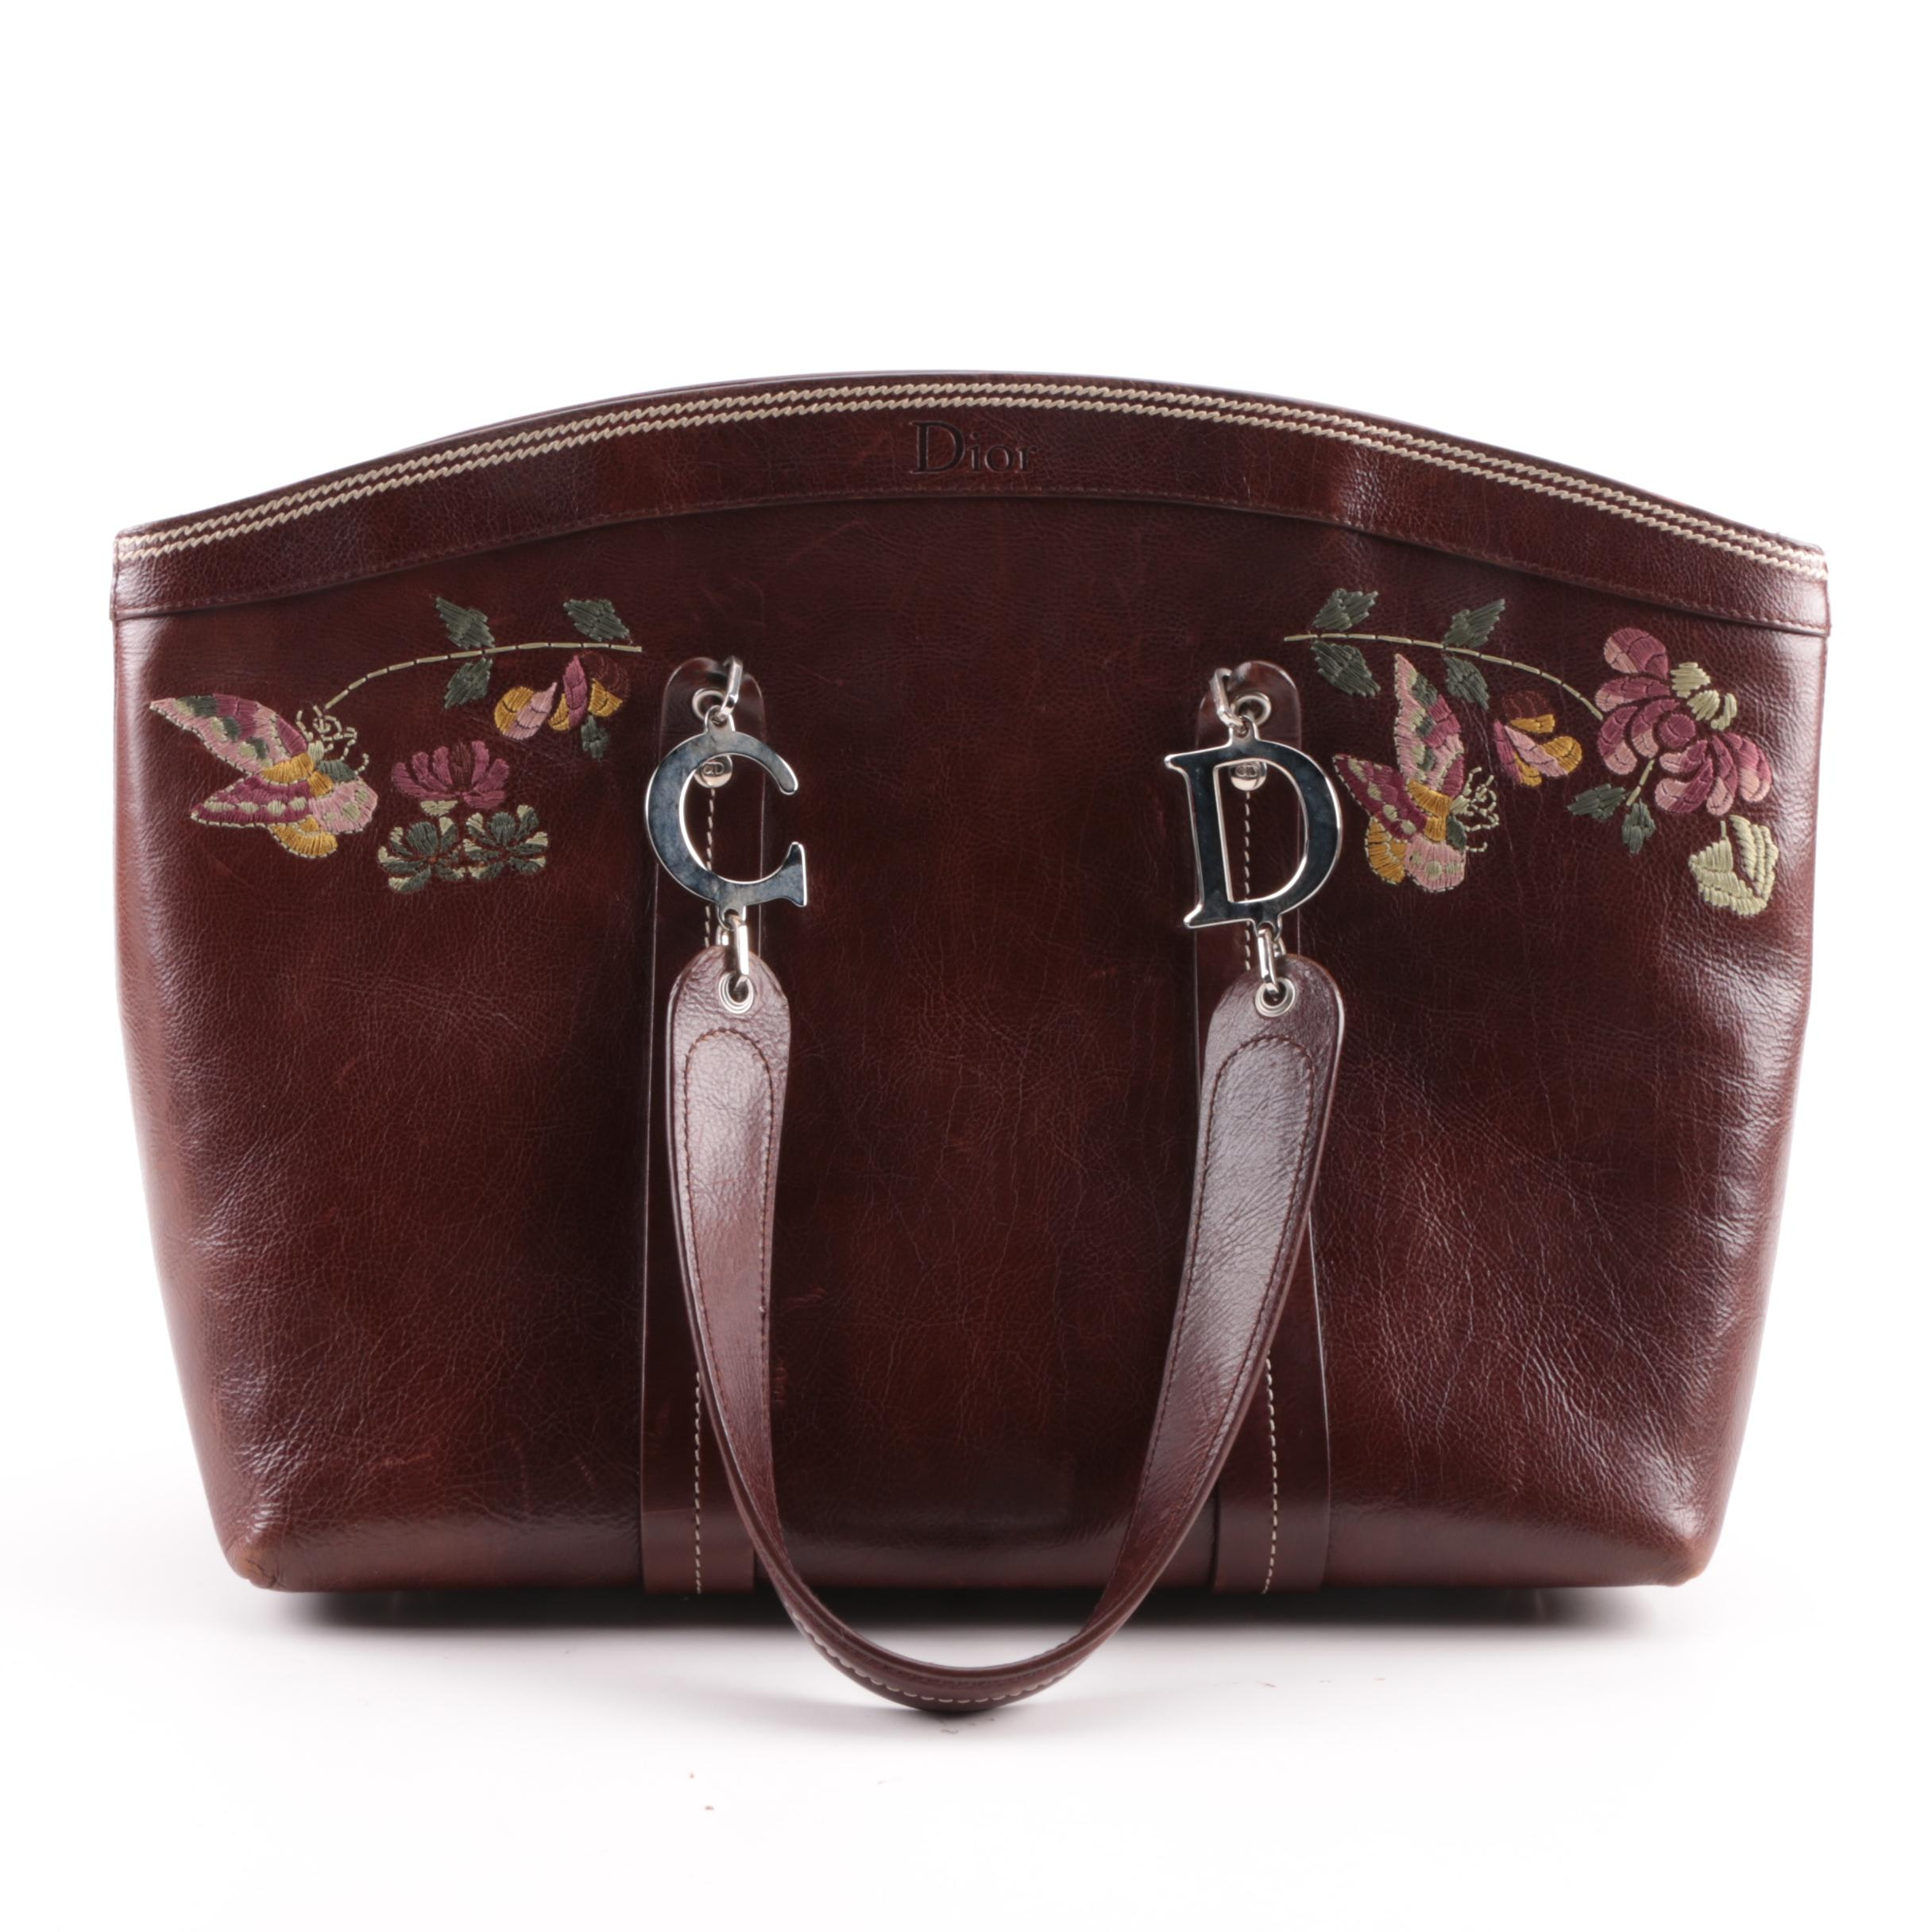 Christian Dior Burgundy Leather Butterfly and Floral Embroidered Satchel